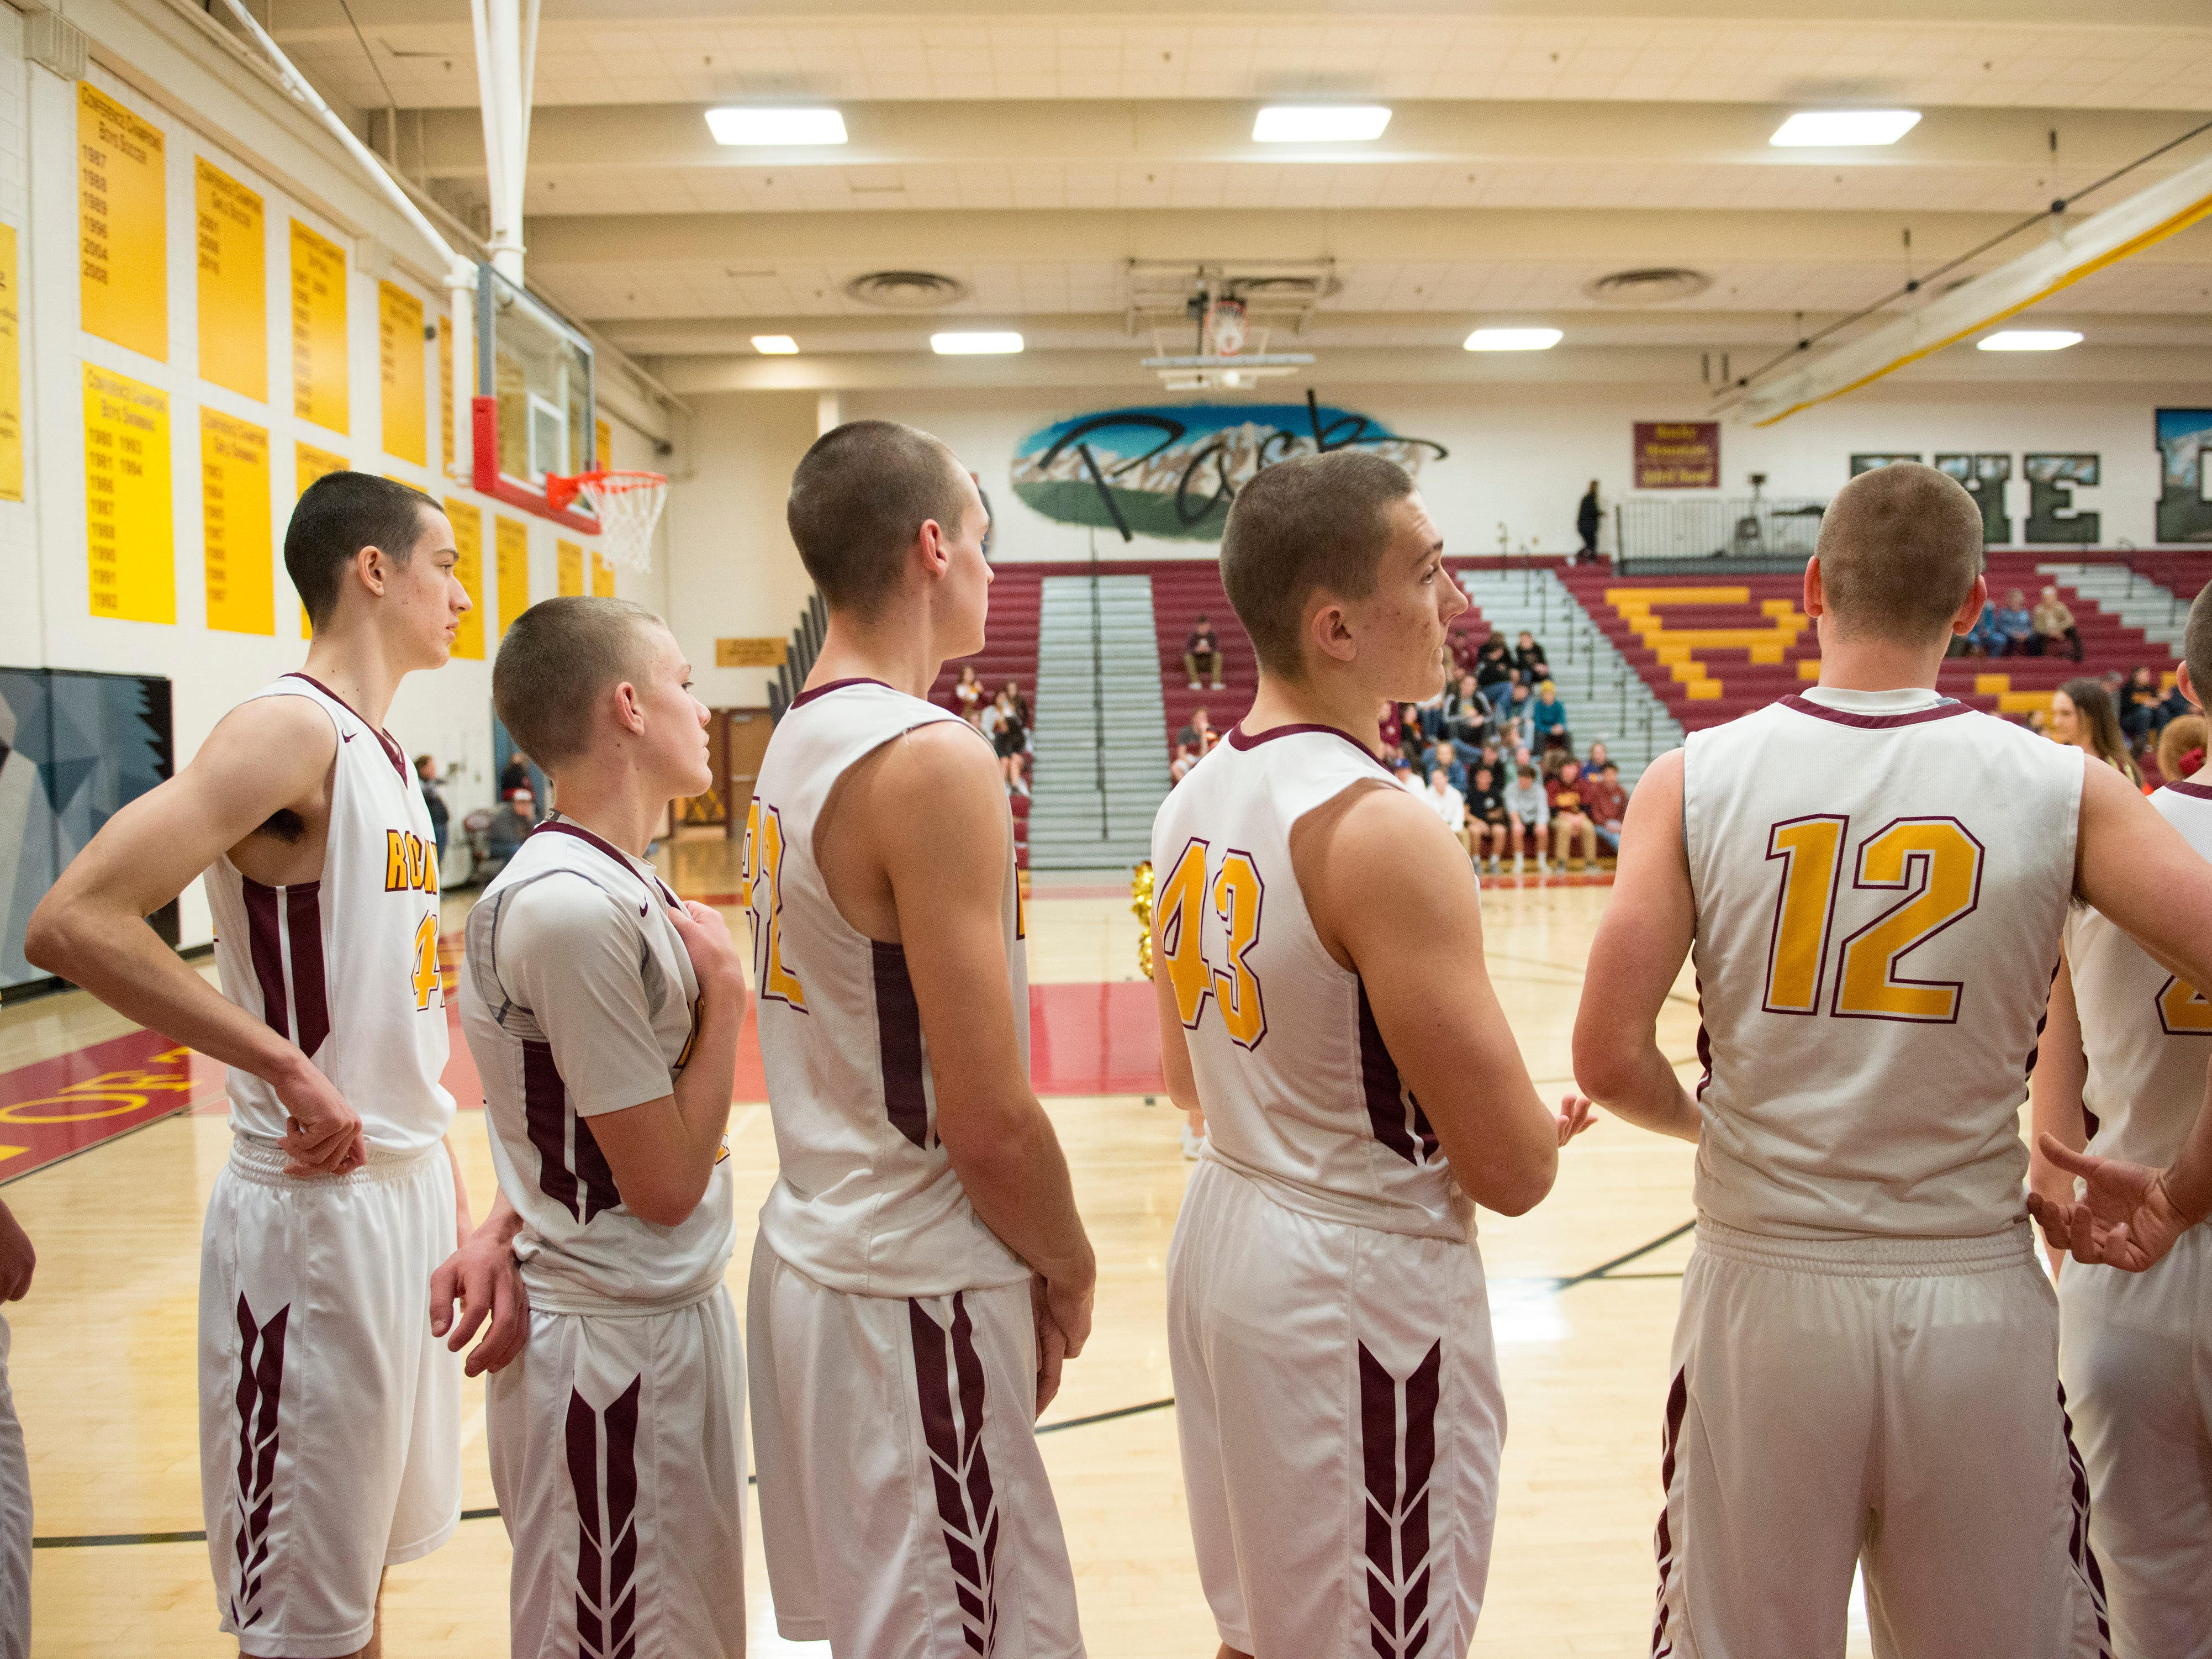 The Lobos basketball team lines up for the National Anthem before taking on Greeley West on Tuesday, January 8, 2019. The team shaved their heads a few weeks after finding out their center, Carter Edgerley, was diagnosed with cancer.